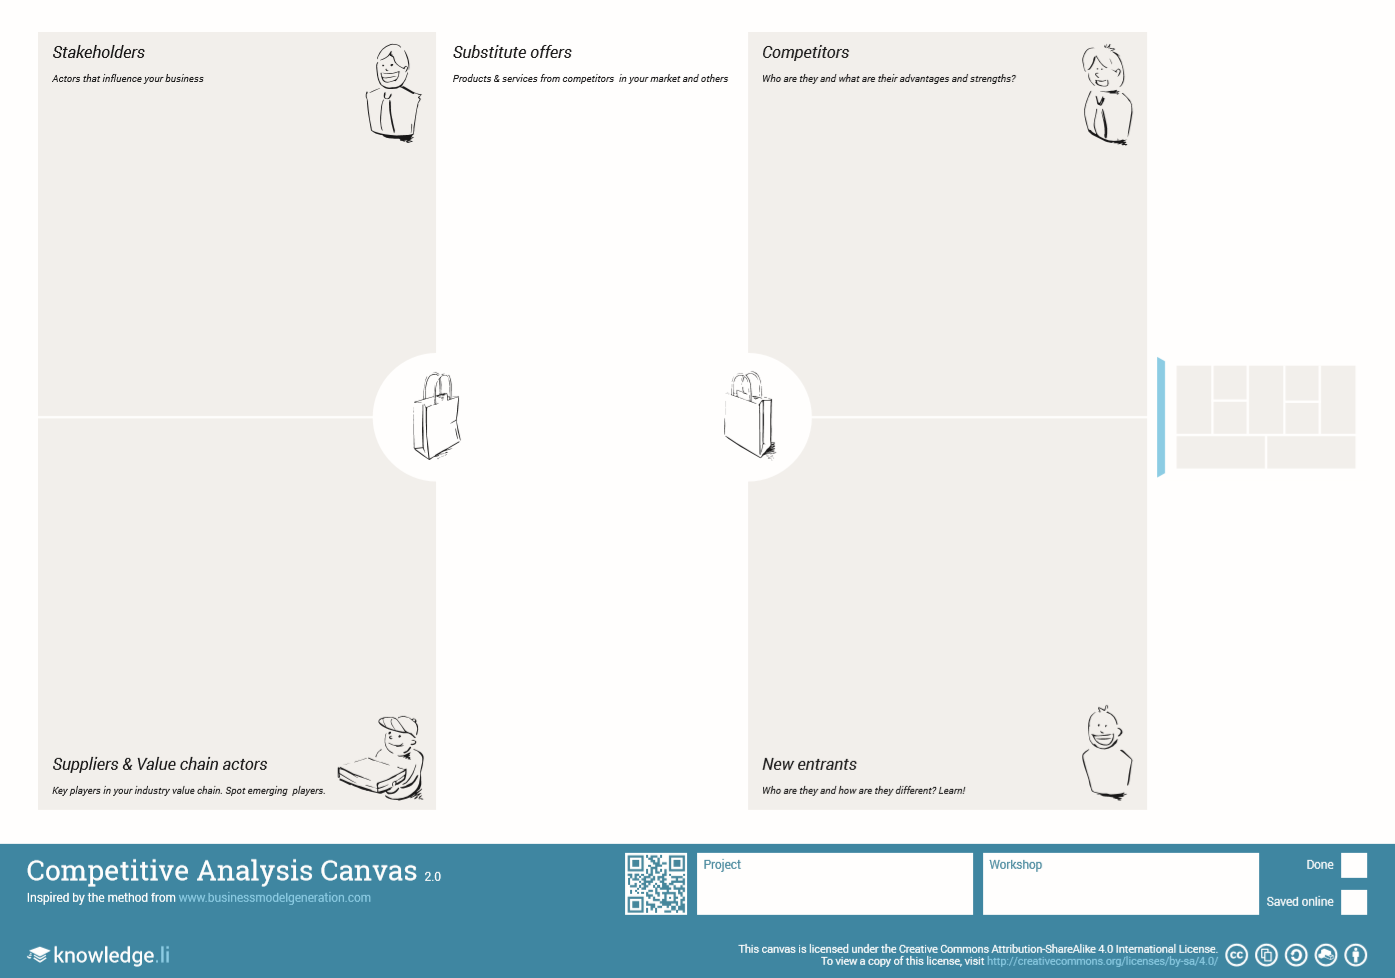 Competitive Analysis Canvas